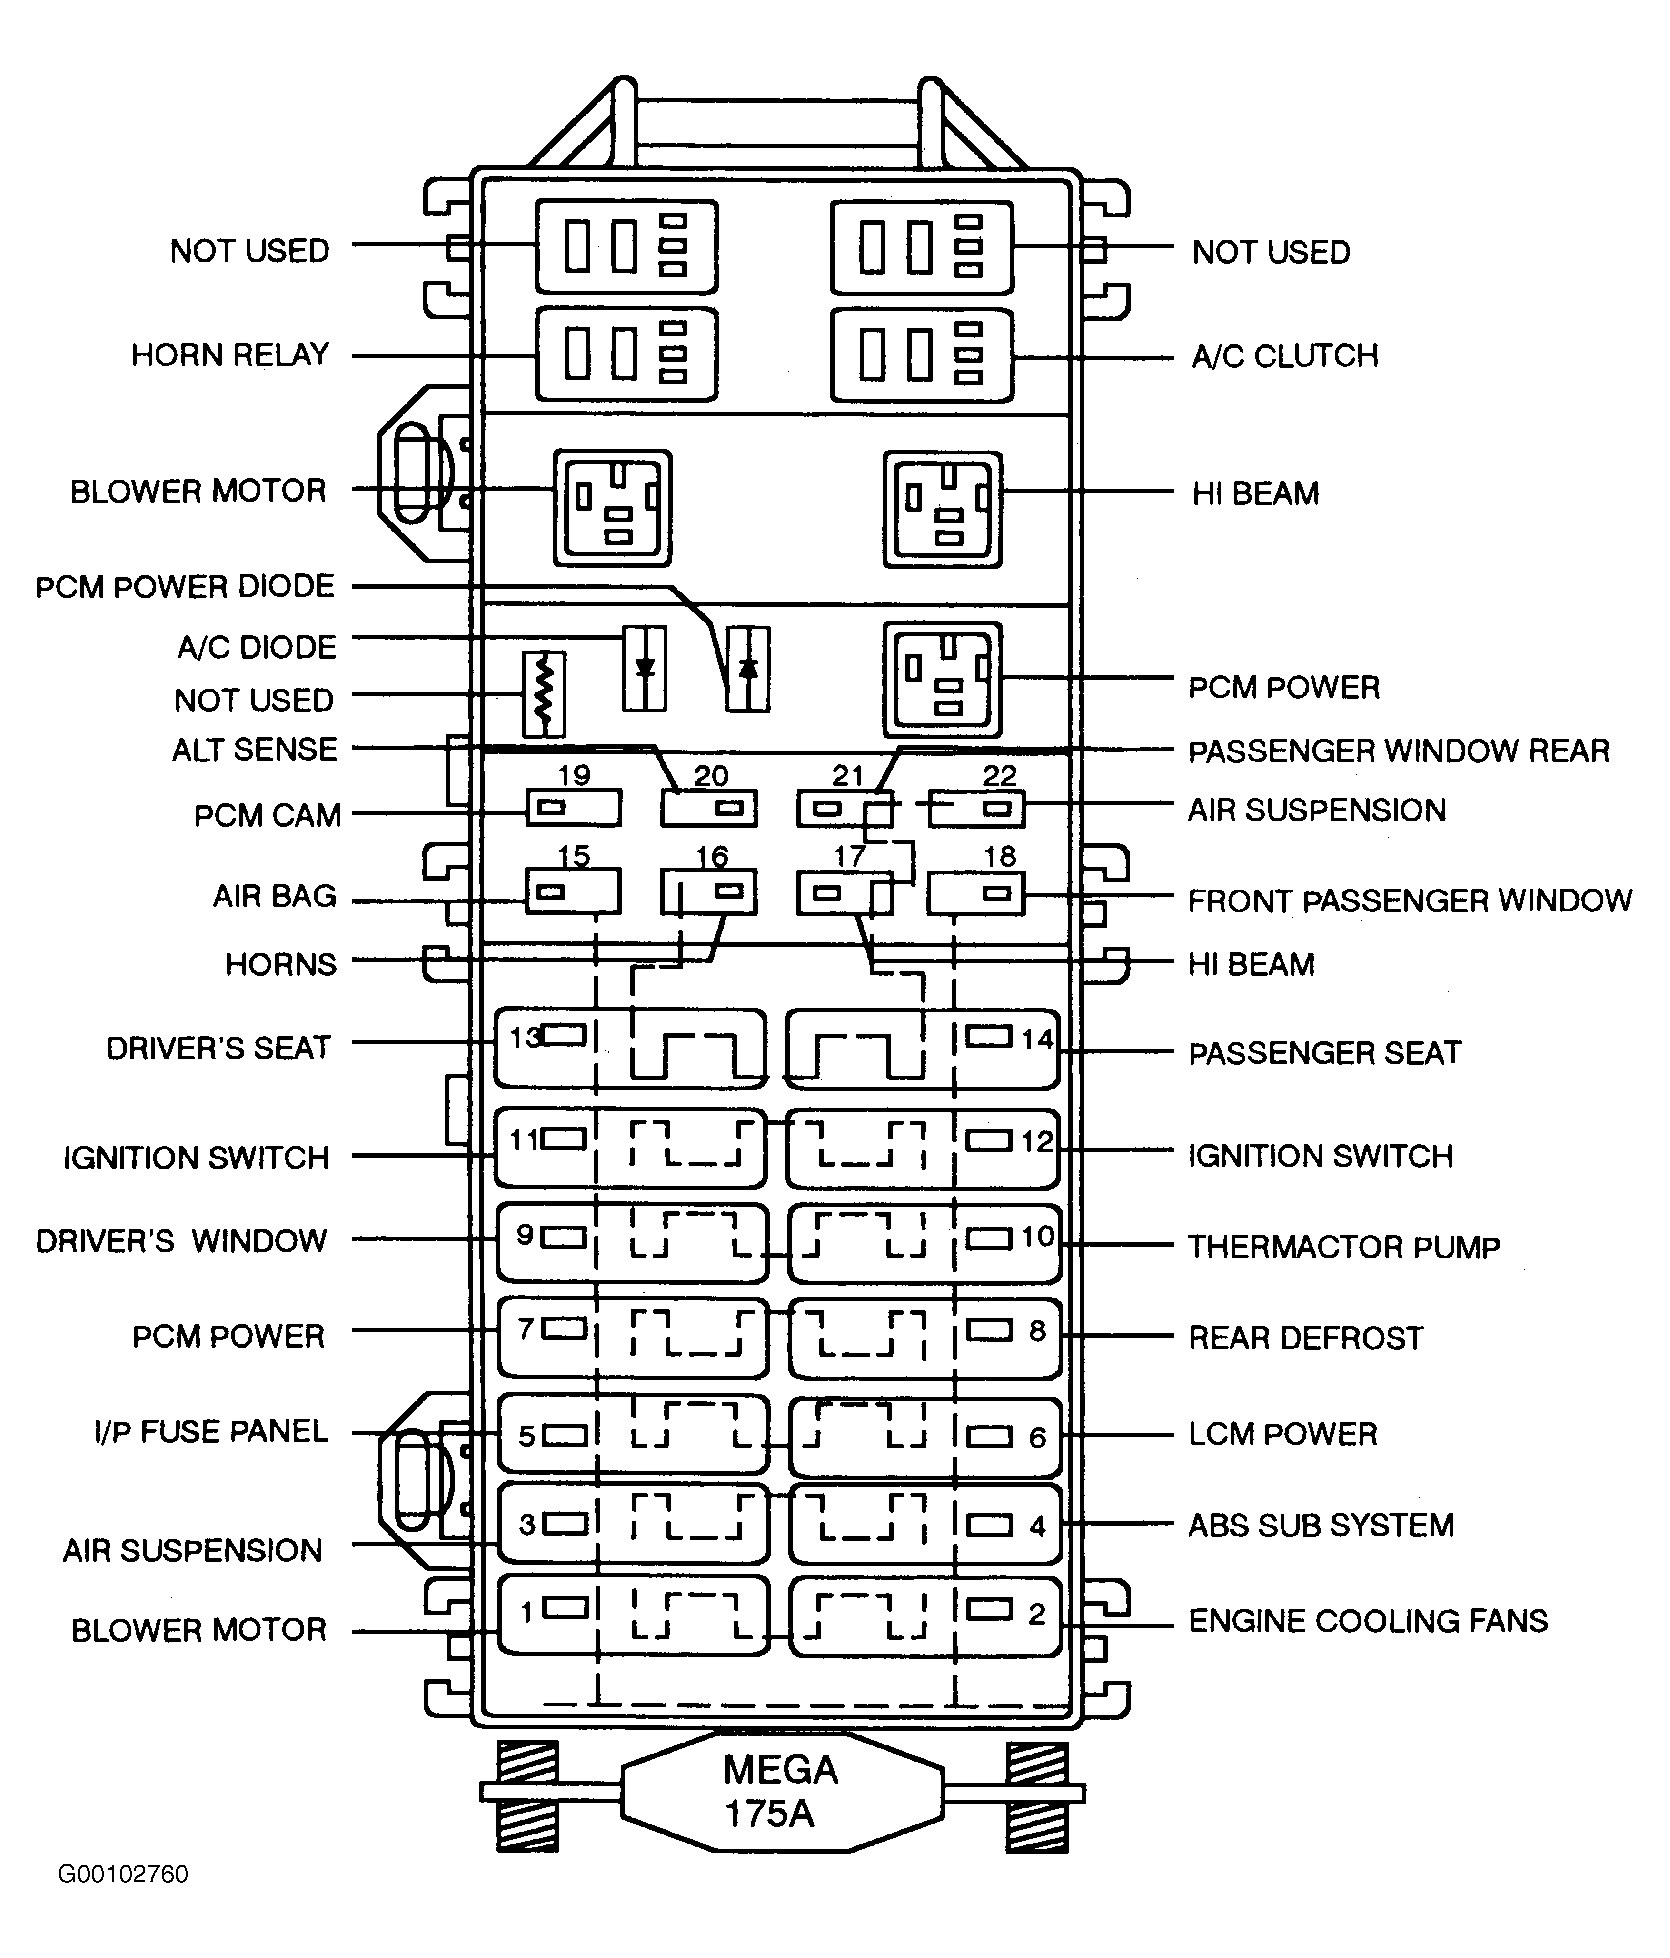 hight resolution of 2001 lincoln continental fuse diagram wiring diagrams for 1997 lincoln continental fuse box layout 1997 lincoln continental fuse box diagram